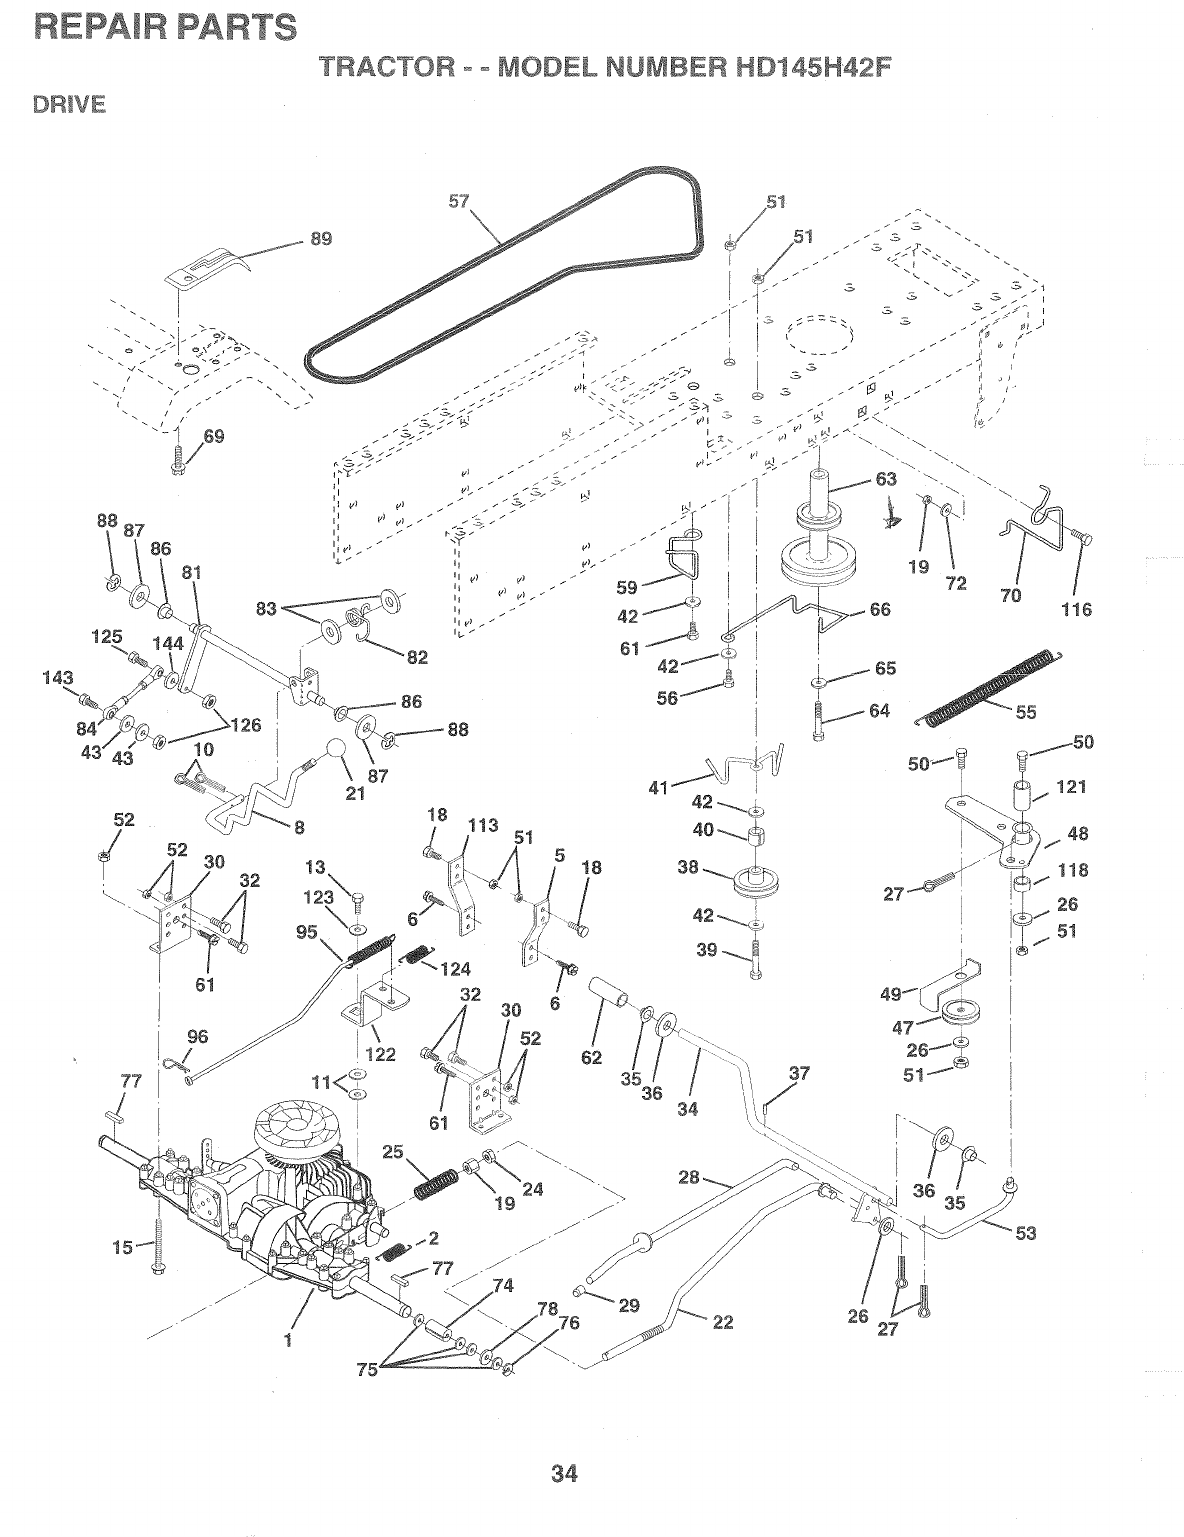 Page 34 of Poulan Lawn Mower HD145H42F User Guide